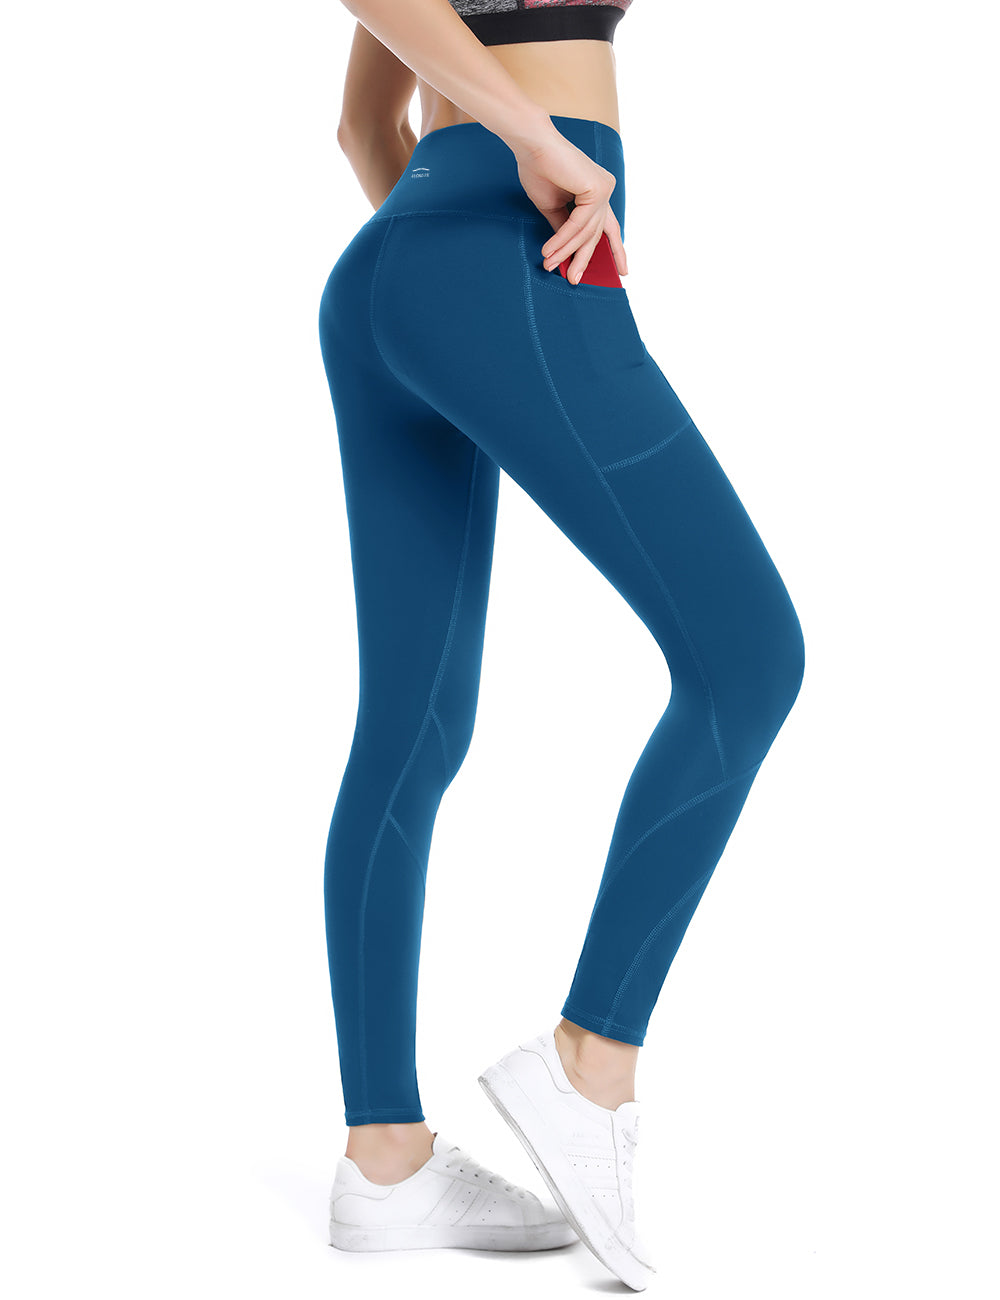 Classic Blue Yoga pants - ALONGFIT